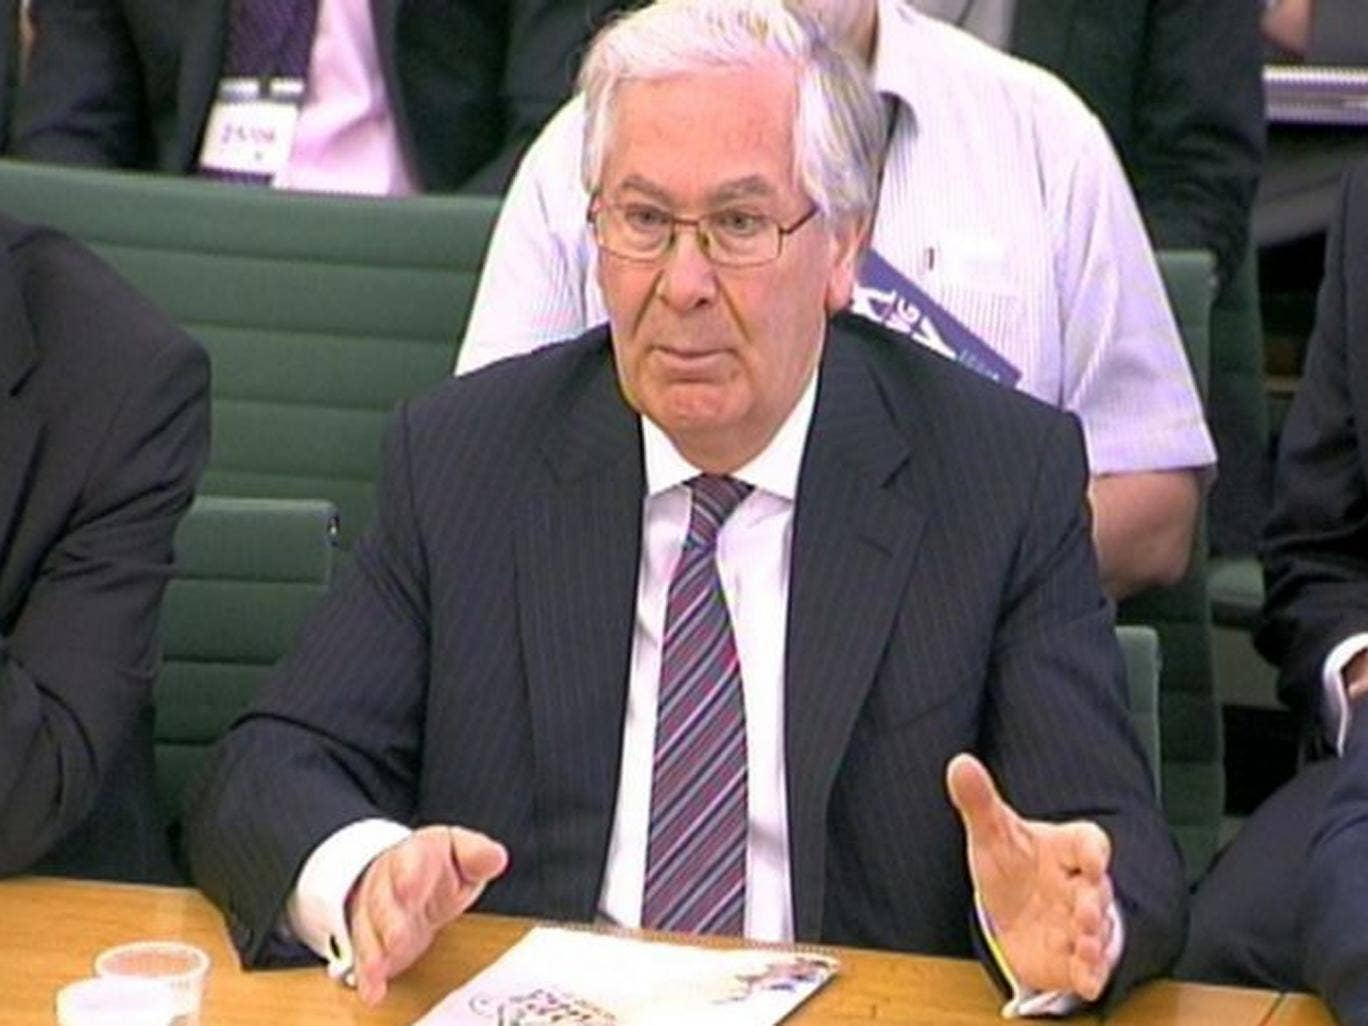 Governor of the Bank of England Mervyn King appears before the Treasury Select Committee at Portcullis House in London for the last time on 25 June 2013